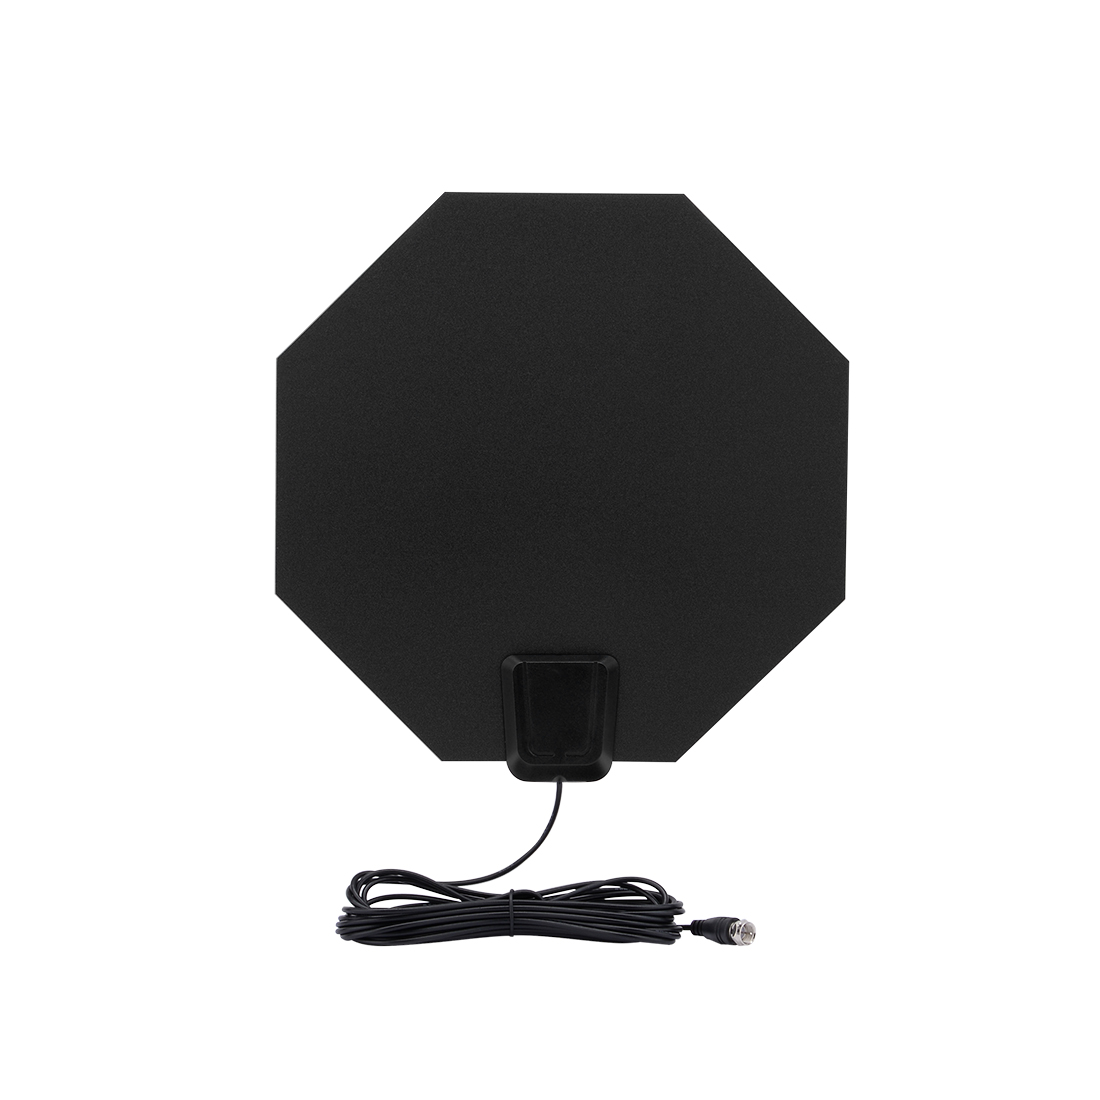 50 Miles Indoor Amplified HDTV Antenna, USB Powered Digital TV Flat Antenna with Detachable Amplifier (UK Plug)